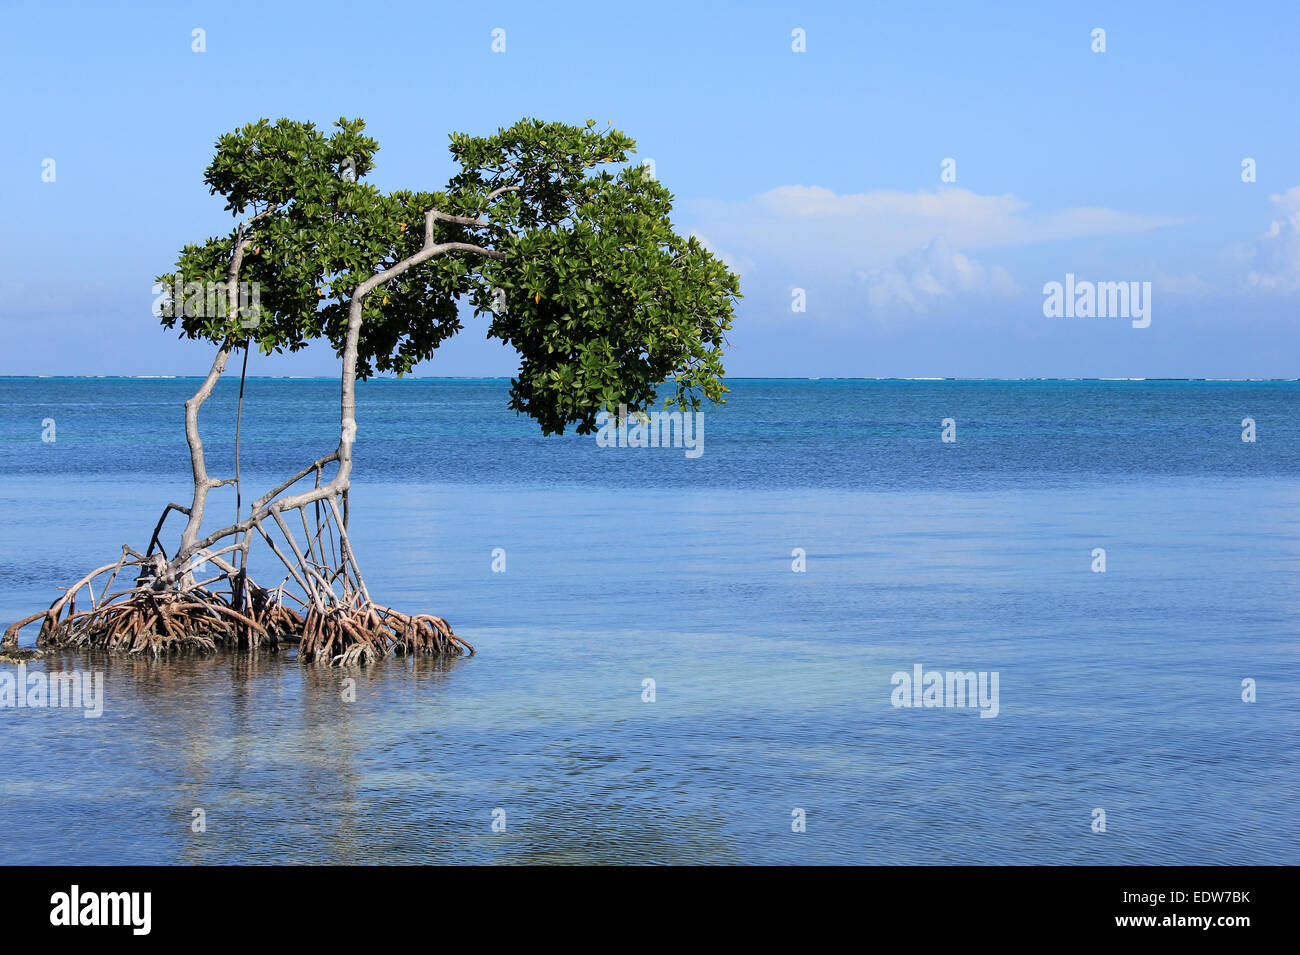 Red Mangrove Rhizophora mangle With Aerial Prop Roots In Caribbean Sea, Caye Caulker, Belize - Stock Image